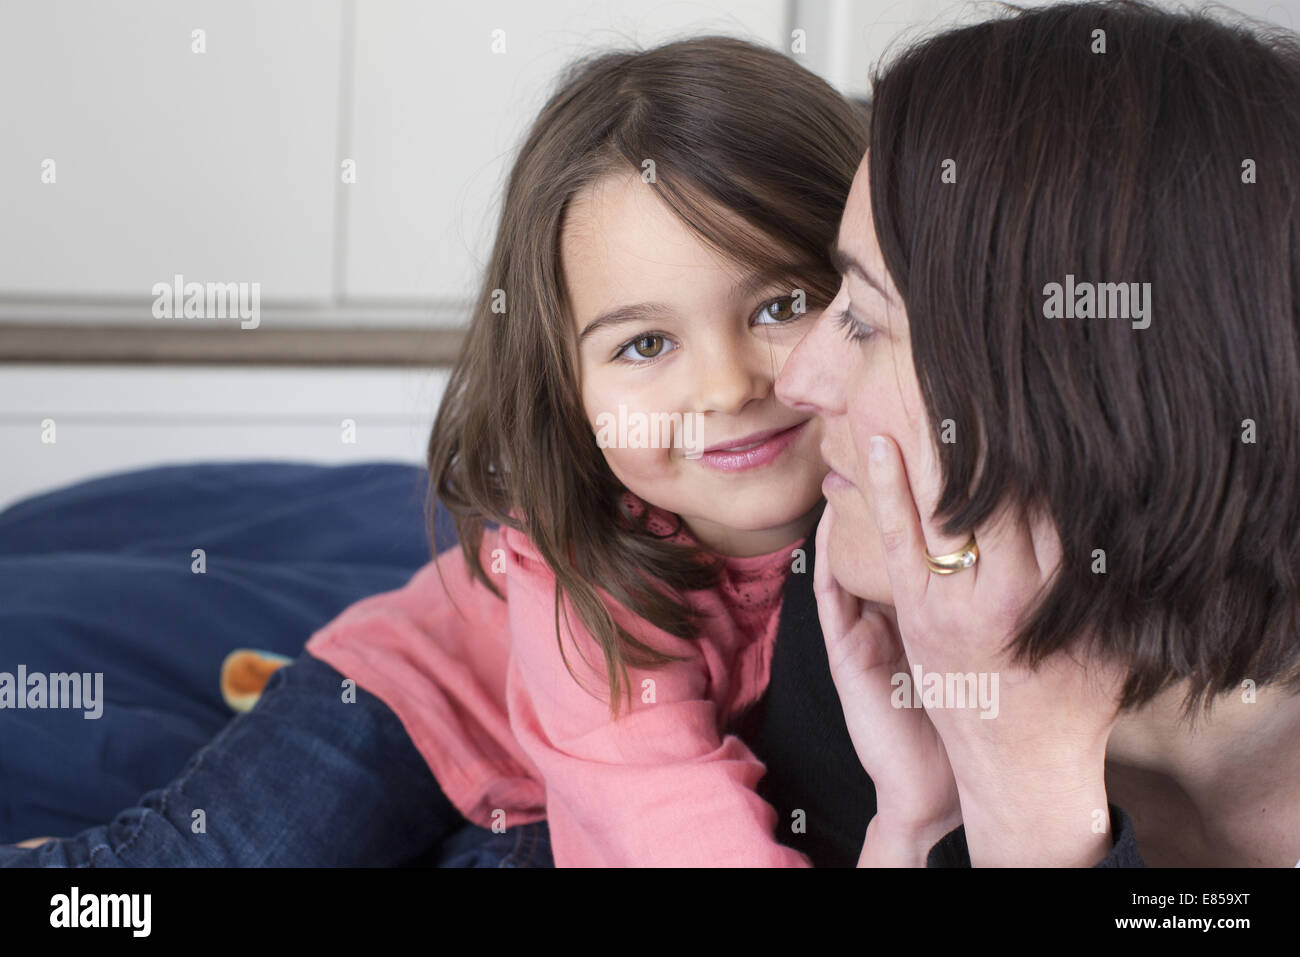 Little girl embracing her mother and smiling - Stock Image